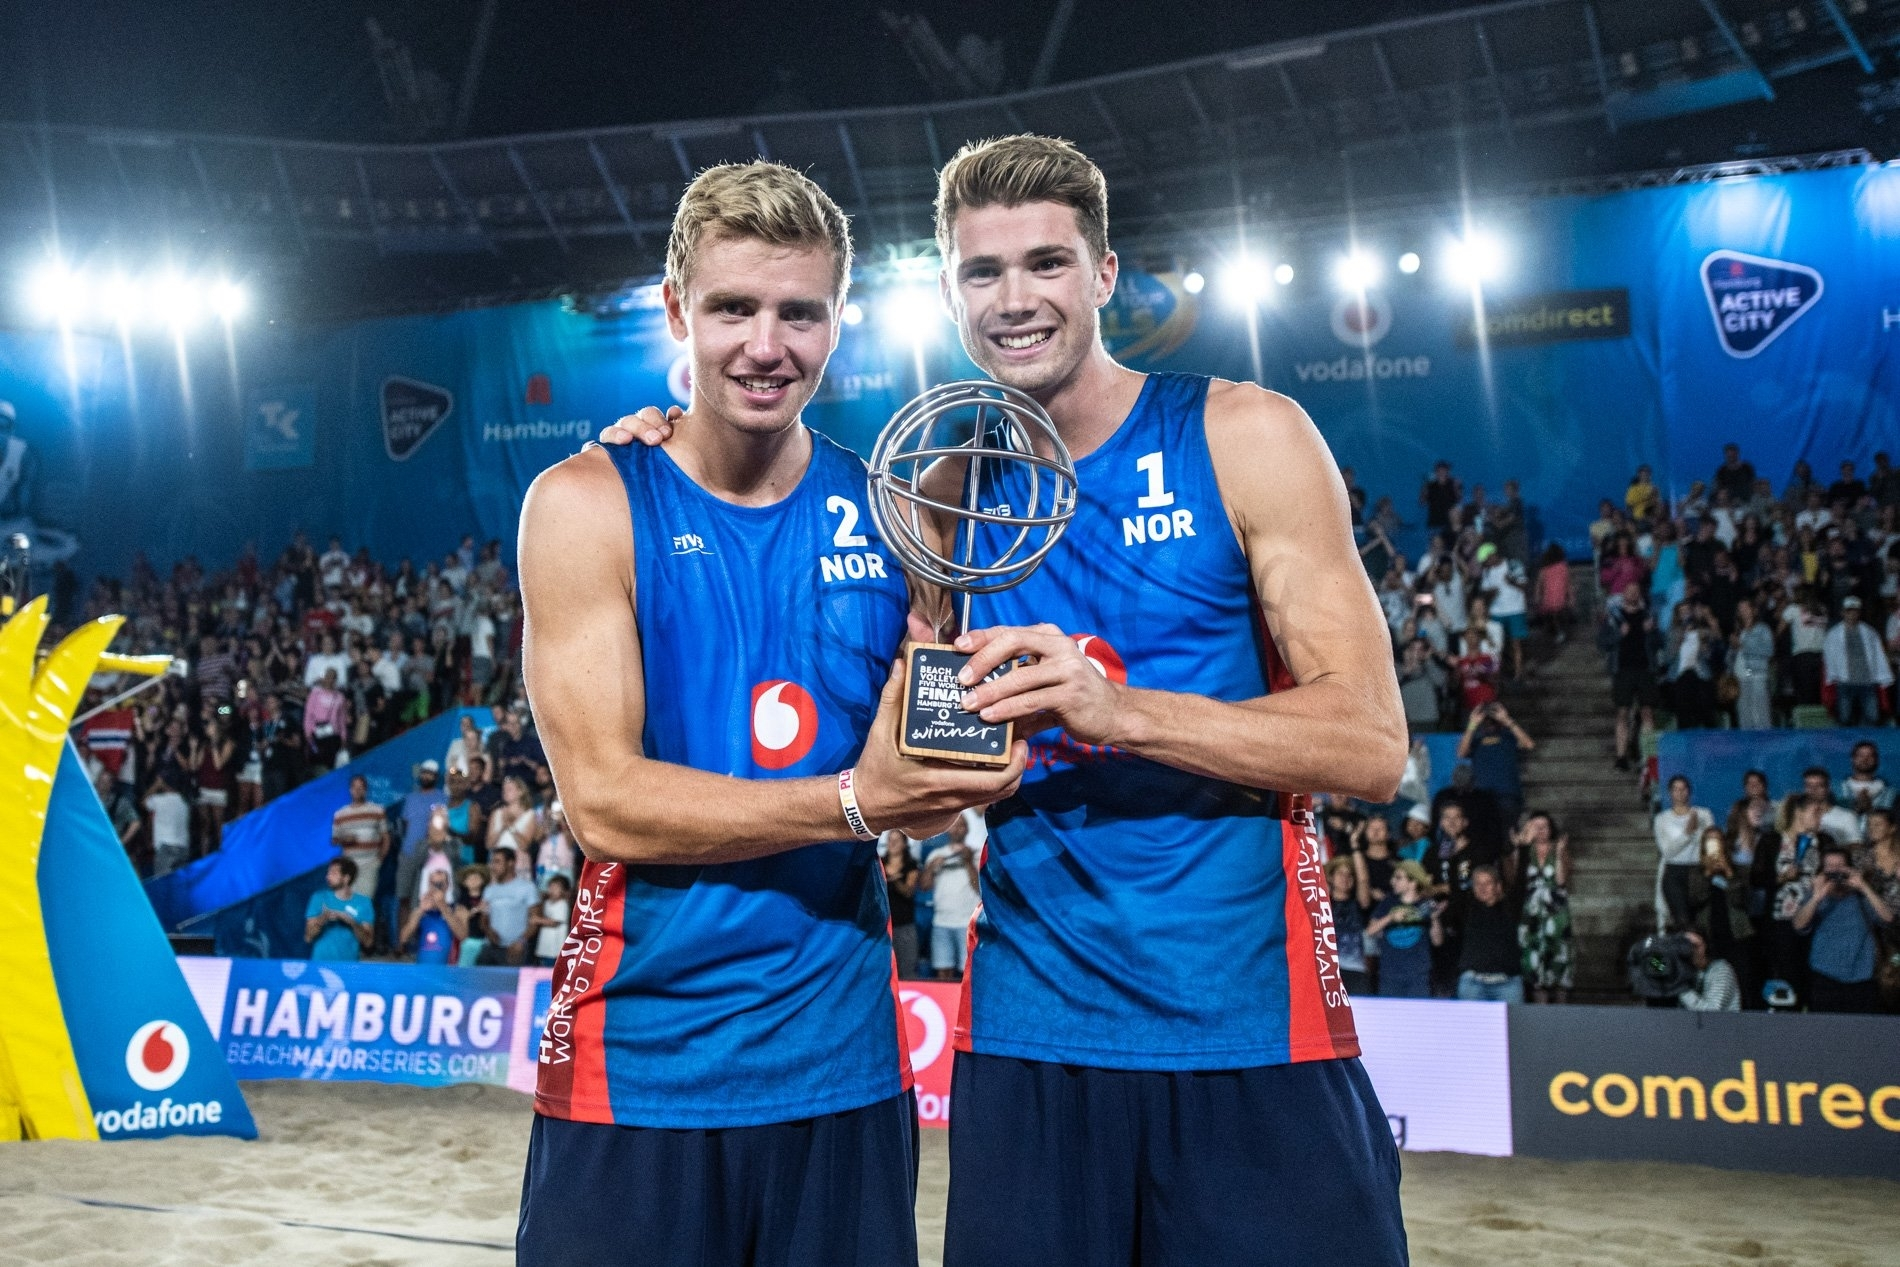 Anders Mol (right) and Christian Sørum won five end-of-season awards from the FIVB.